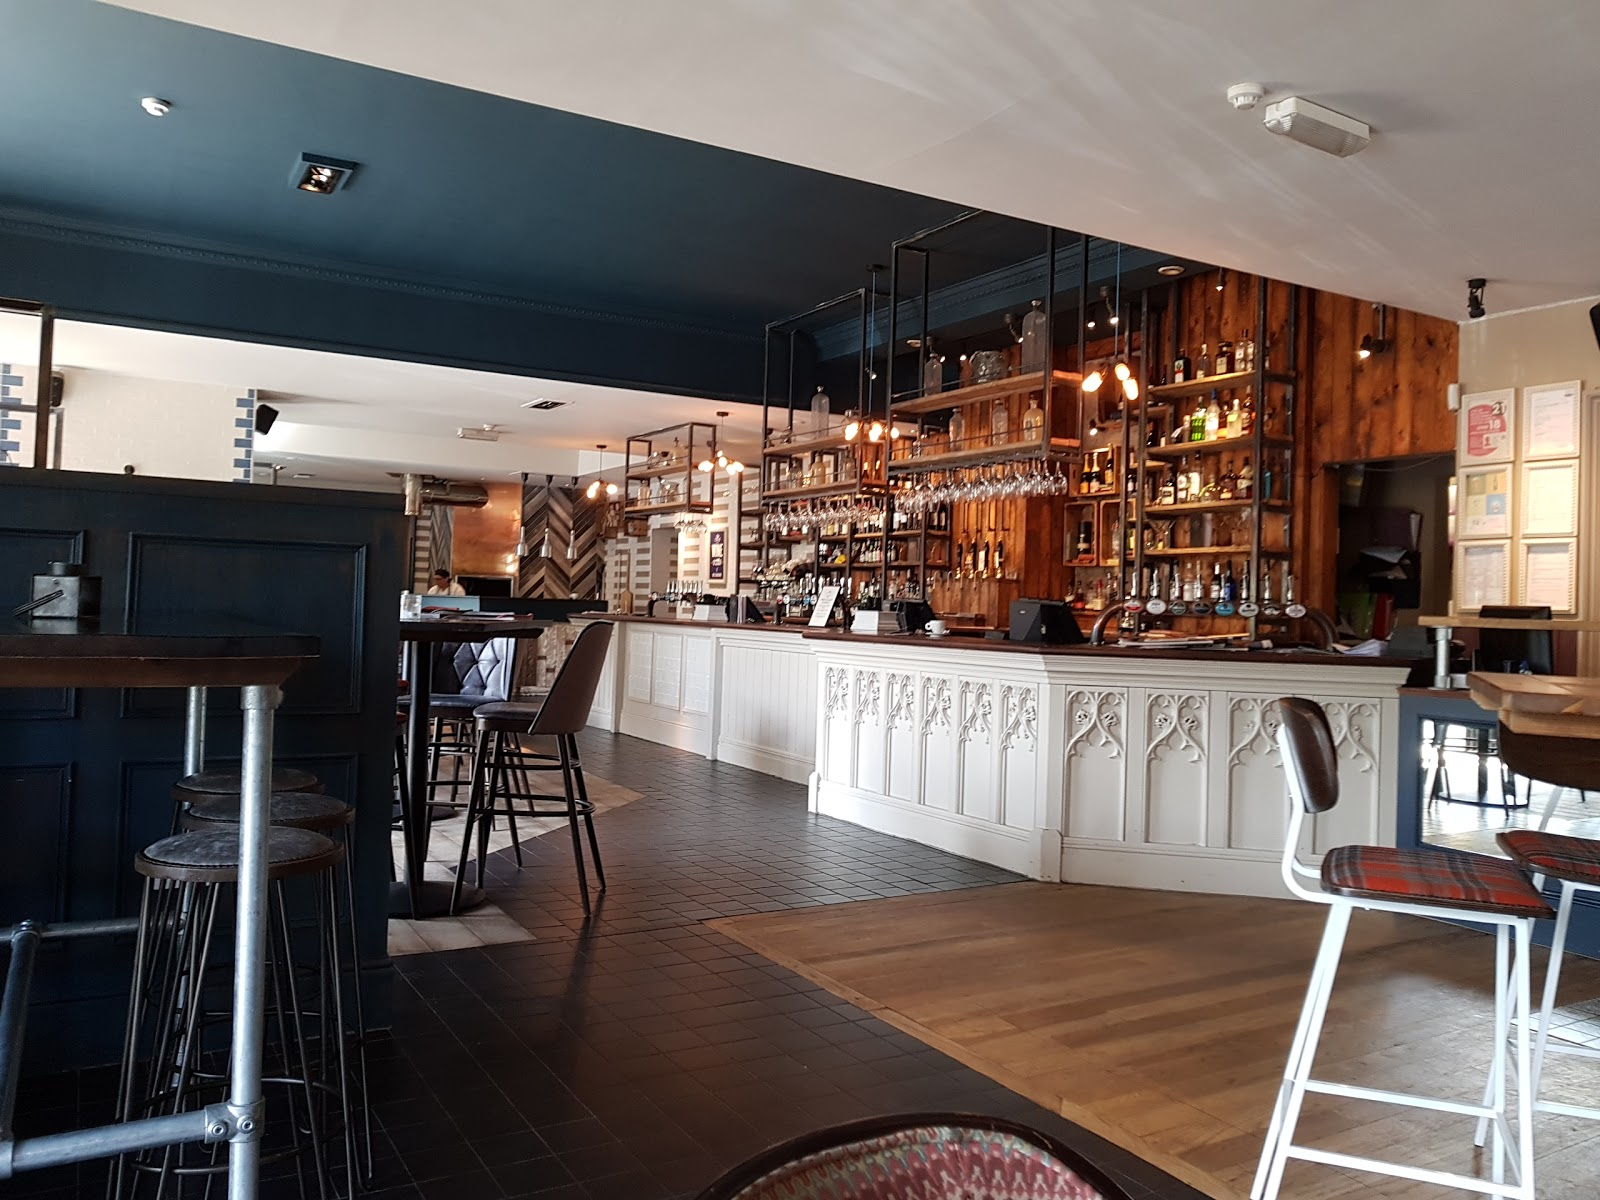 The Florentine: A Work-Friendly Place in Sheffield